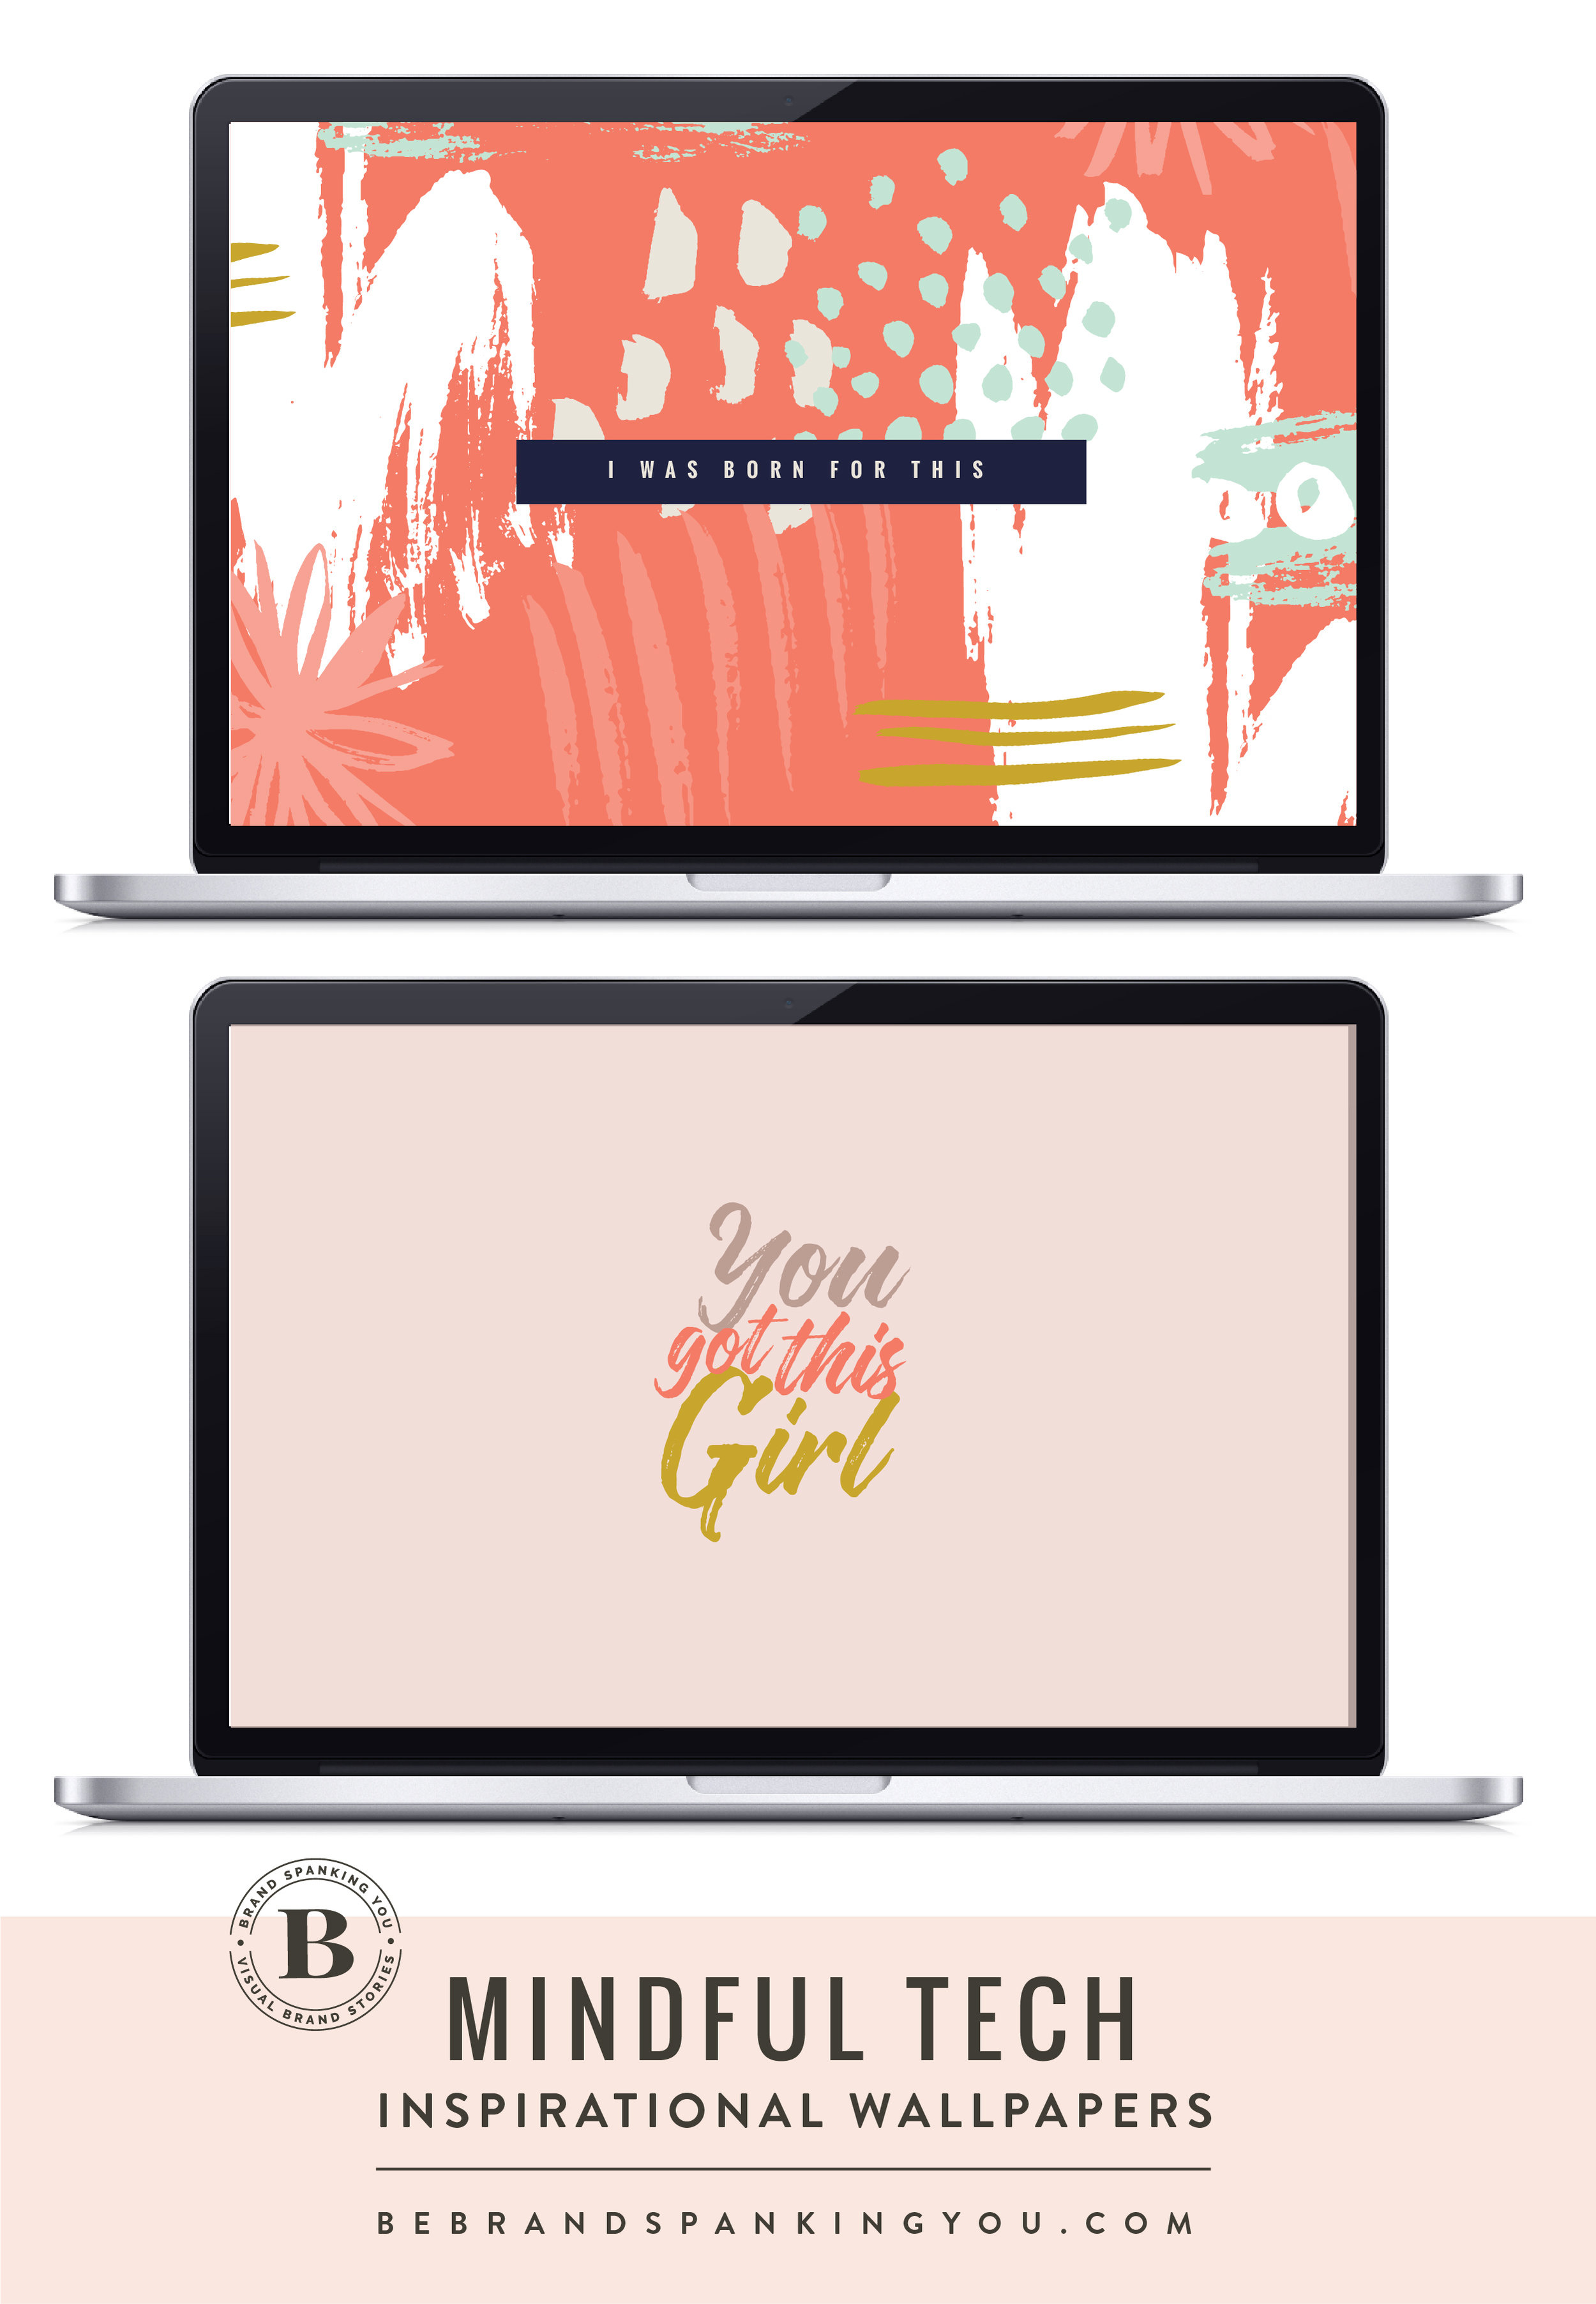 "Free tech wallpapers for desktop and mobile phones that include inspirational ""mantras"" including I am worthy just as I am, You got this girl, bring it, I was born to do this."